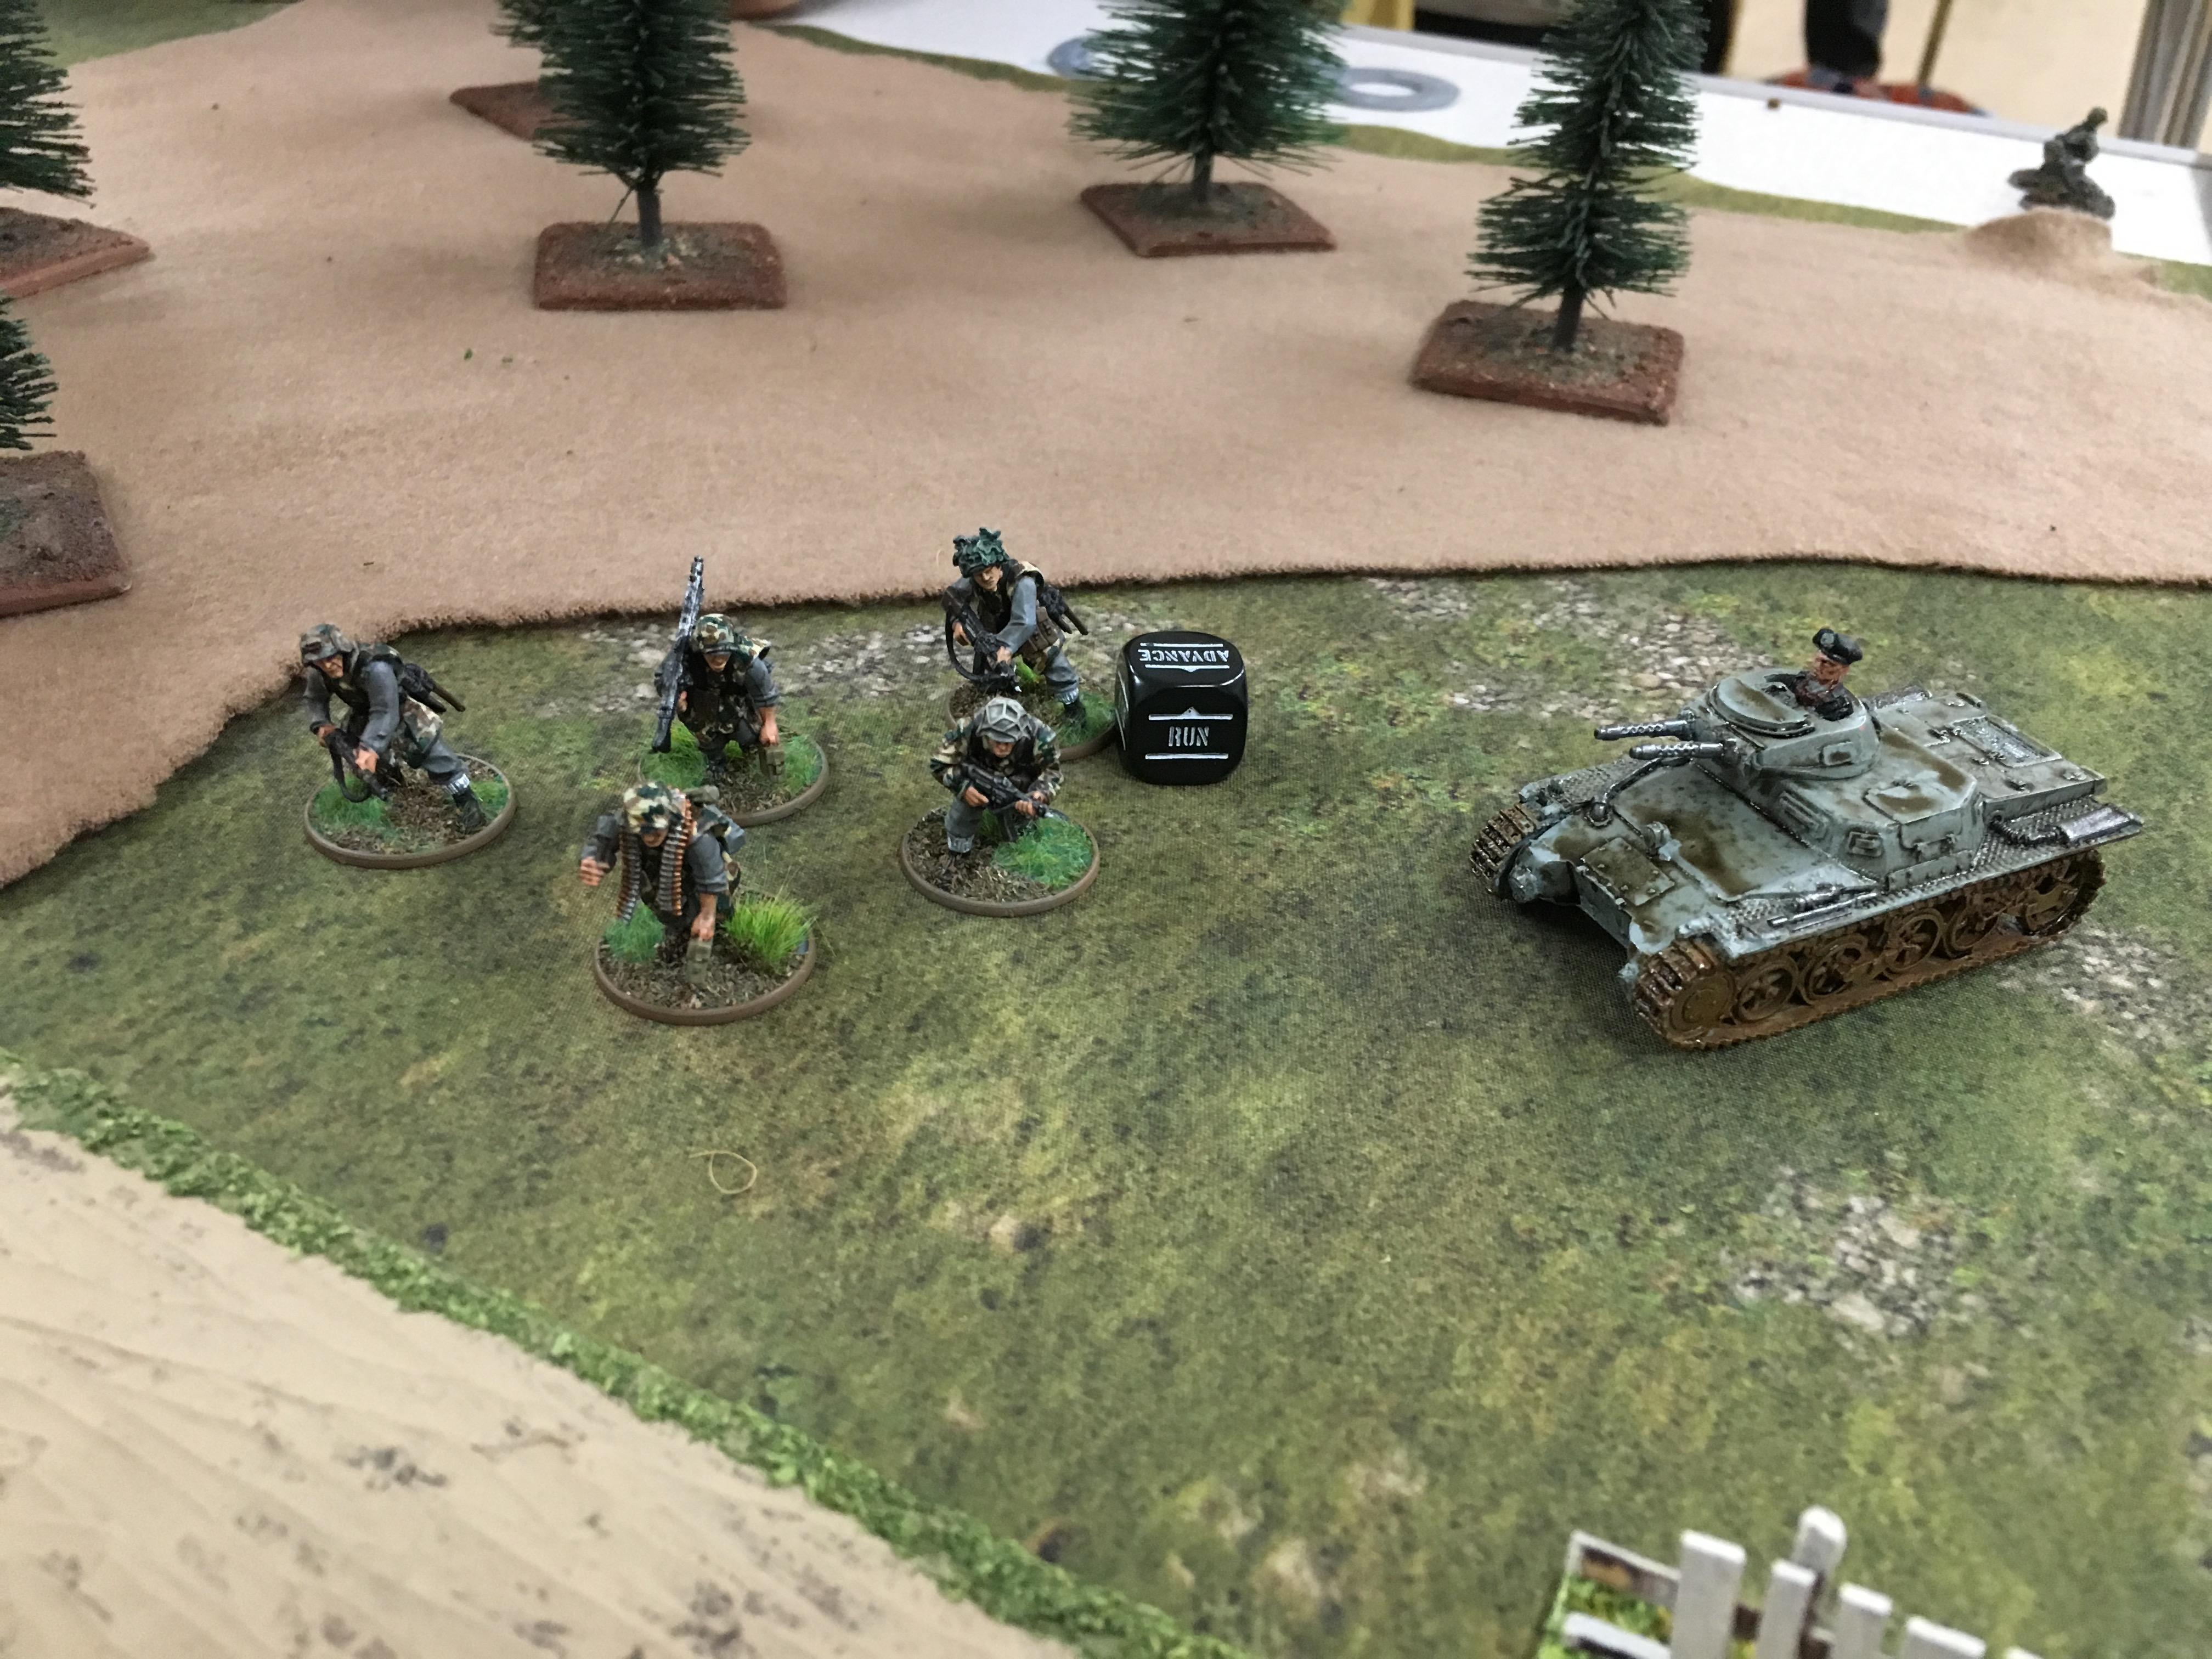 Canadian assault force versus Platoon Storm in a fierce infantry engagement